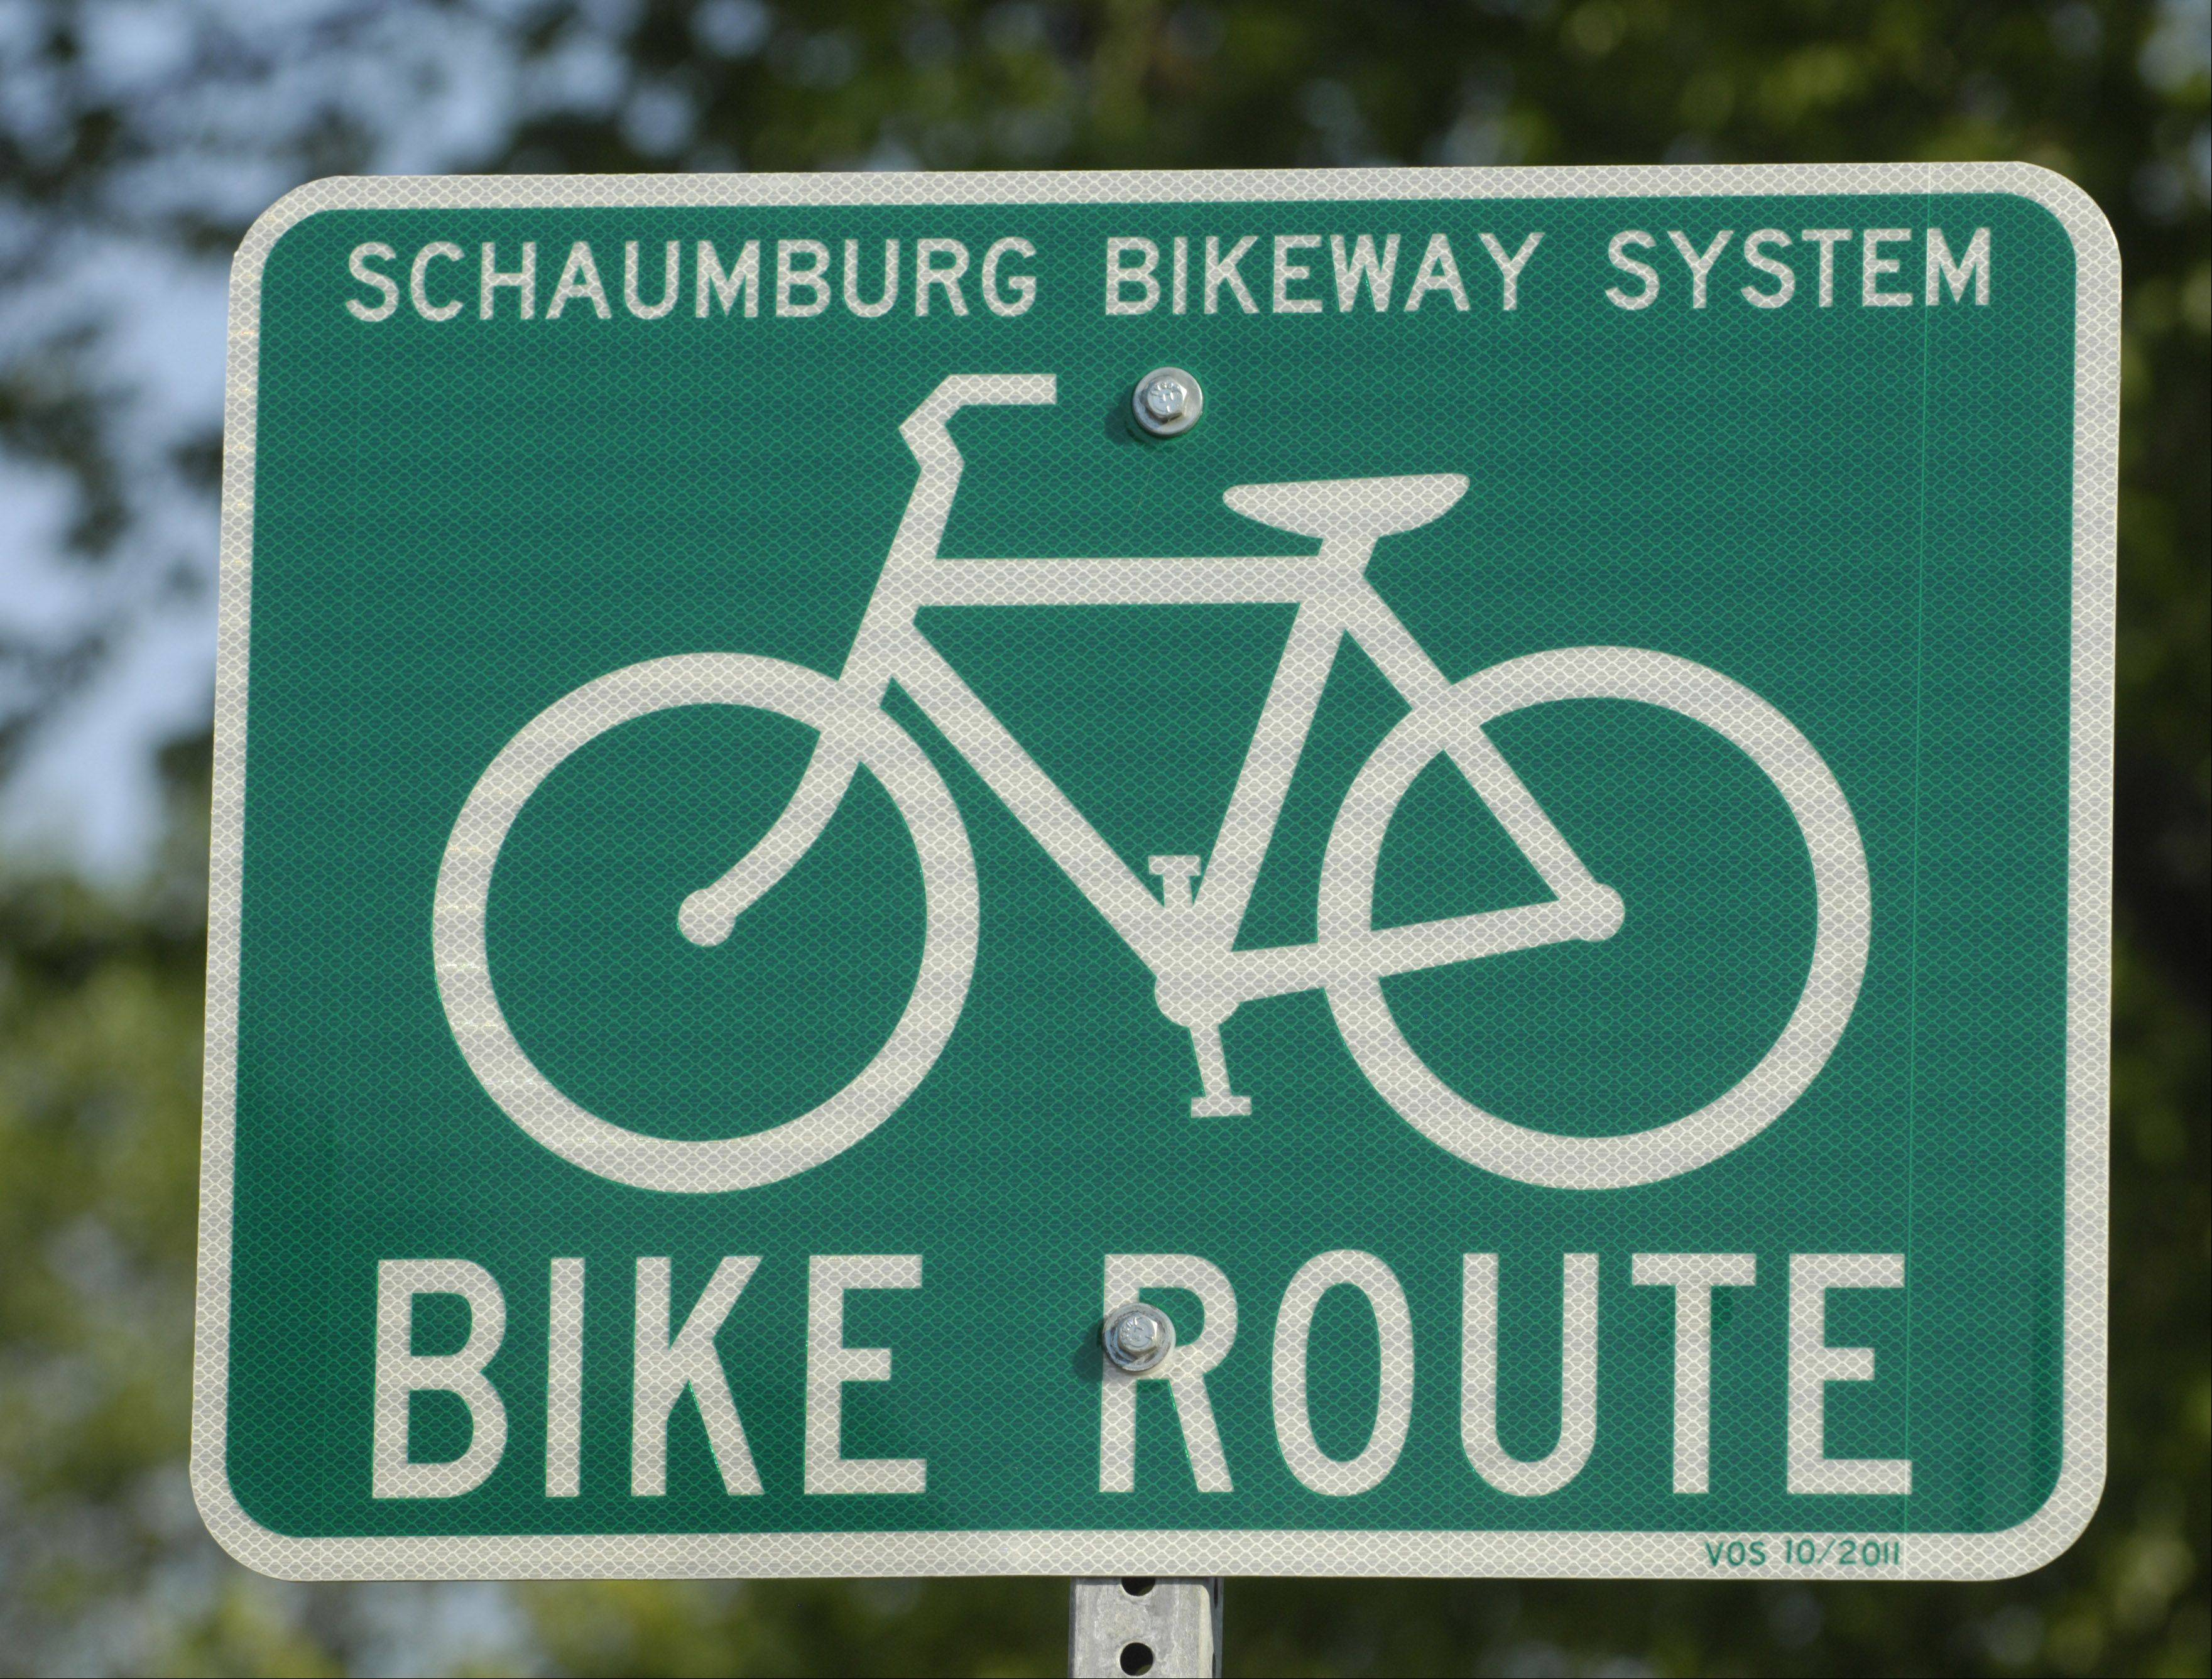 New bike route signs are in place near the intersection of Weathersfield Way and Summit Drive in Schaumburg.